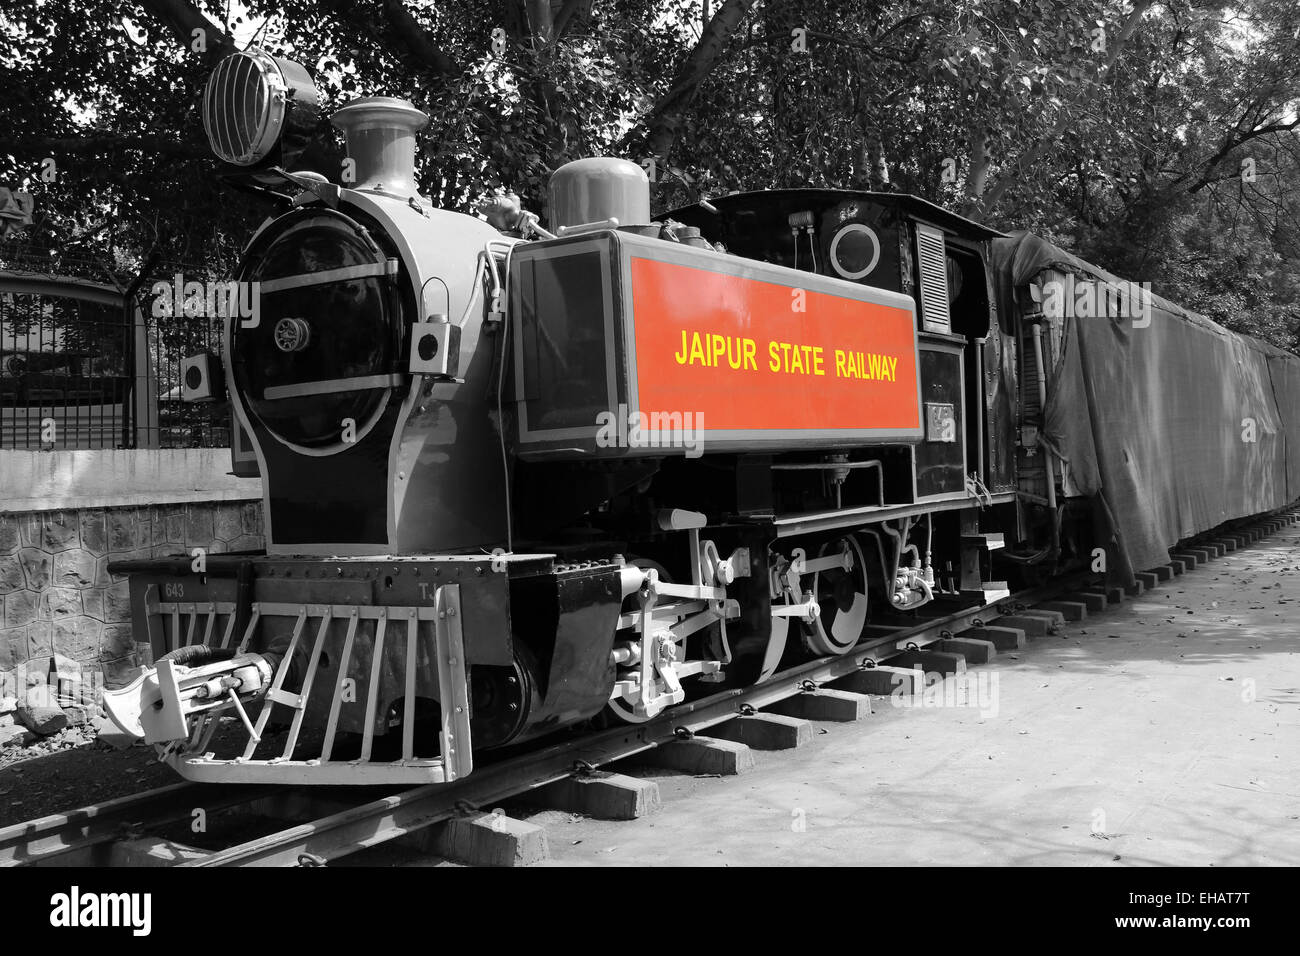 Old Indian Train Stock Photos & Old Indian Train Stock Images - Alamy